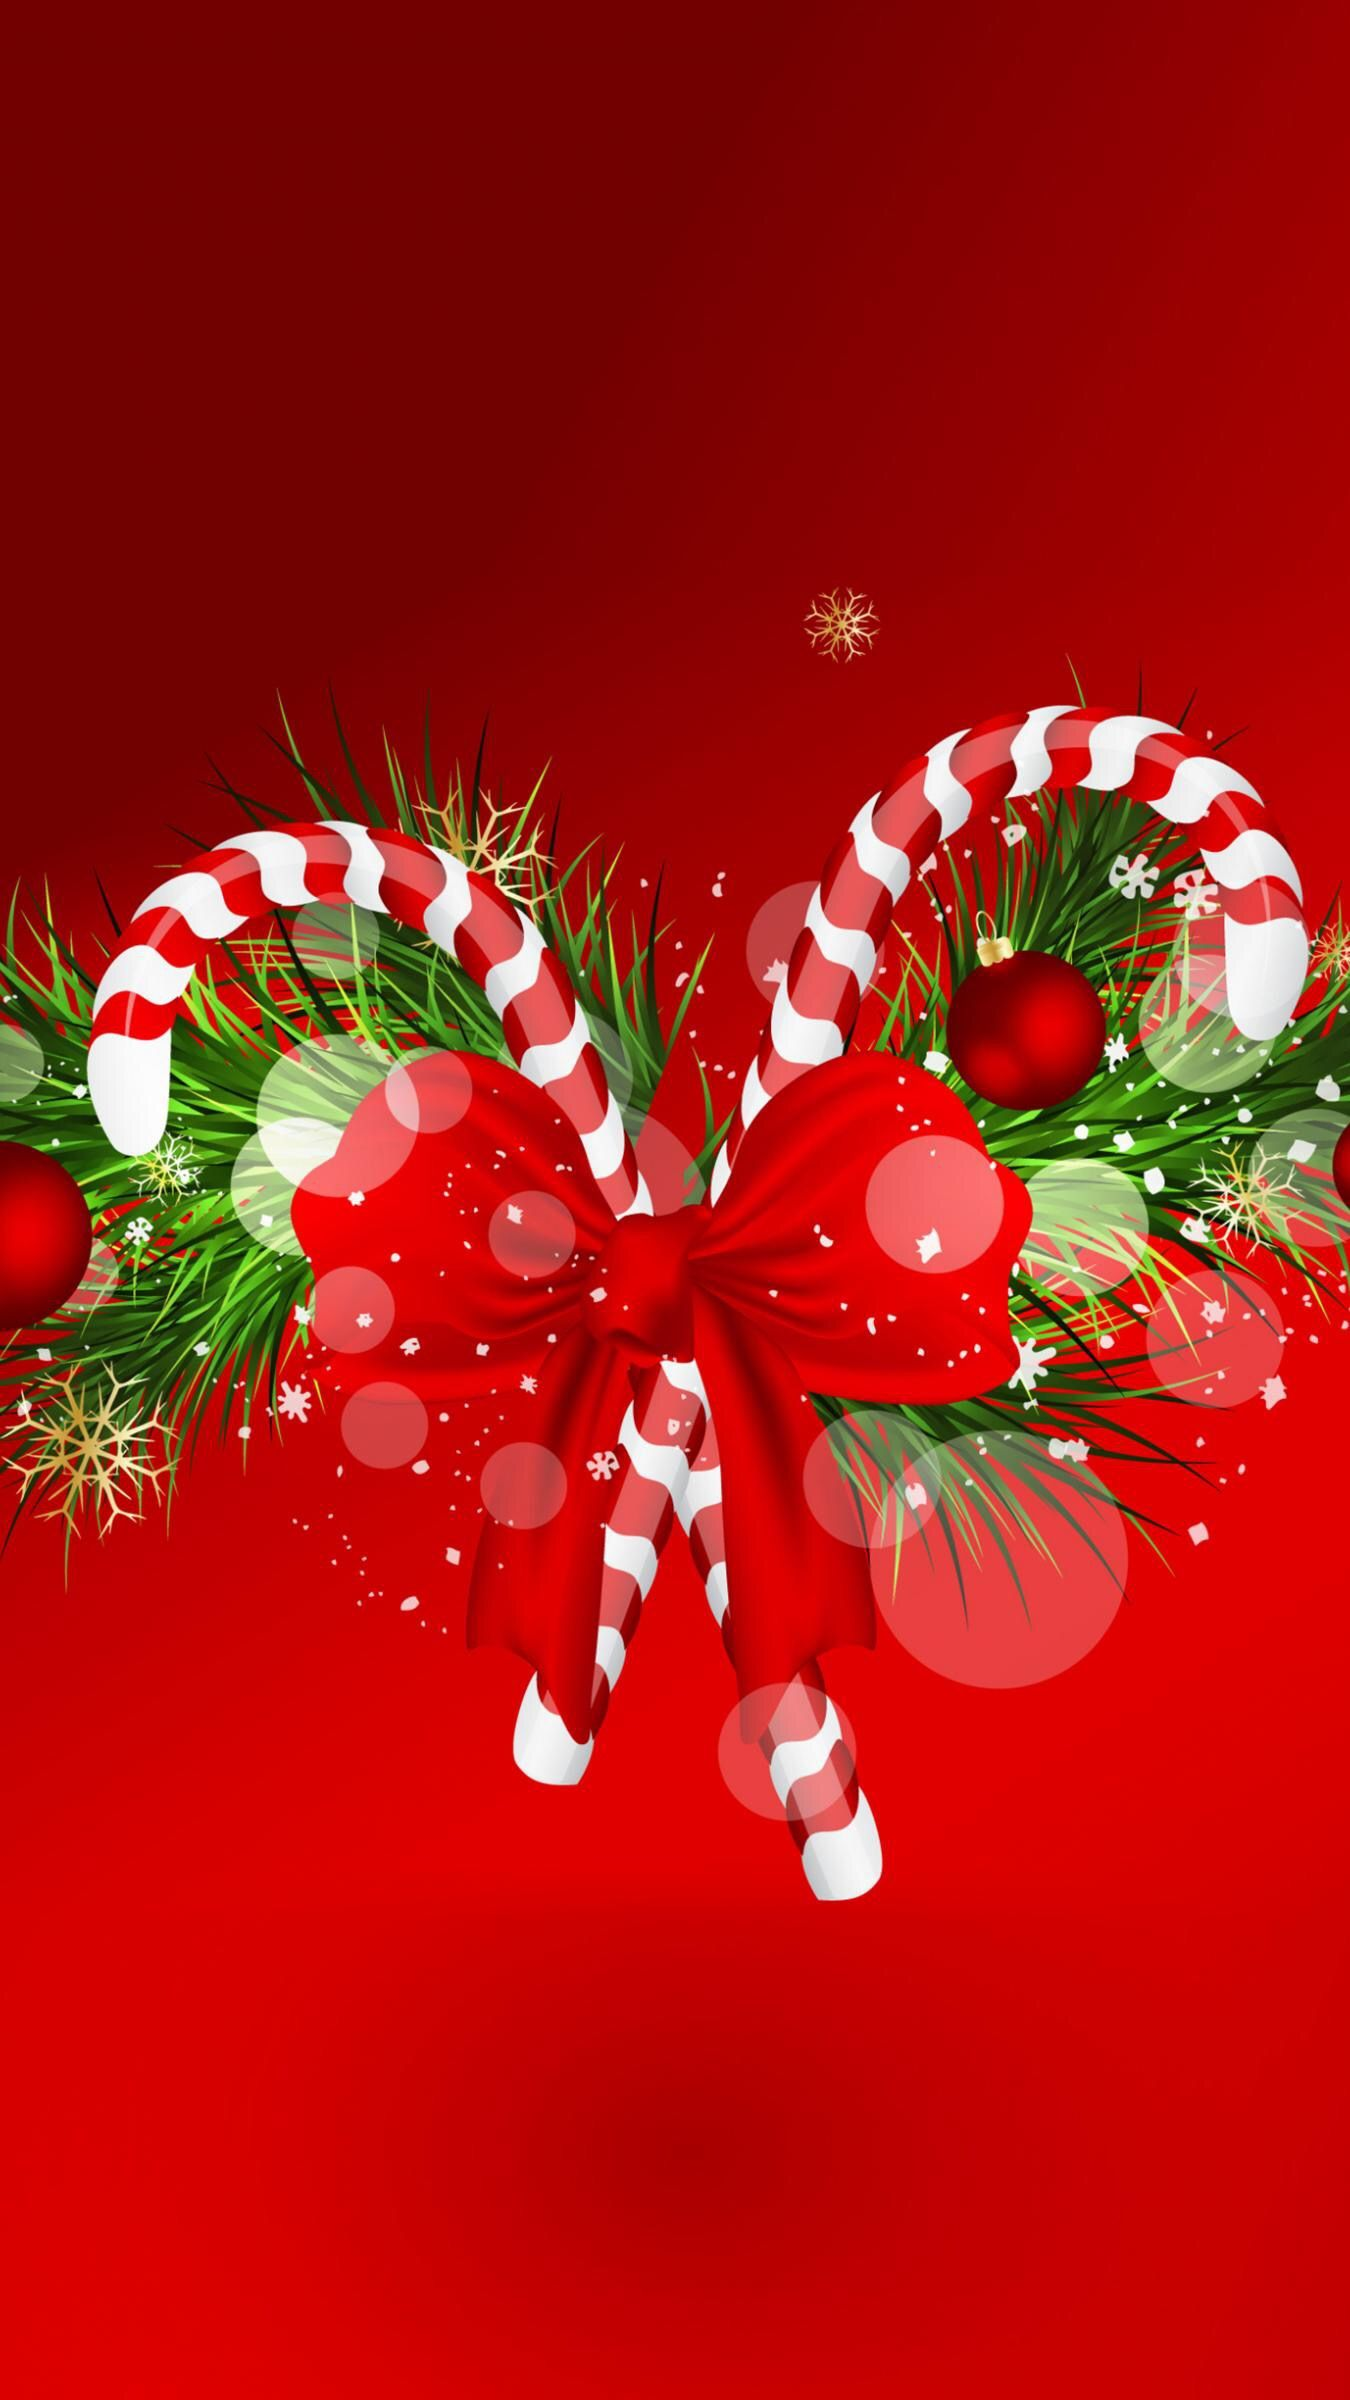 Holiday Wallpaper With Images Christmas Wallpaper Christmas Lockscreen Holiday Wallpaper